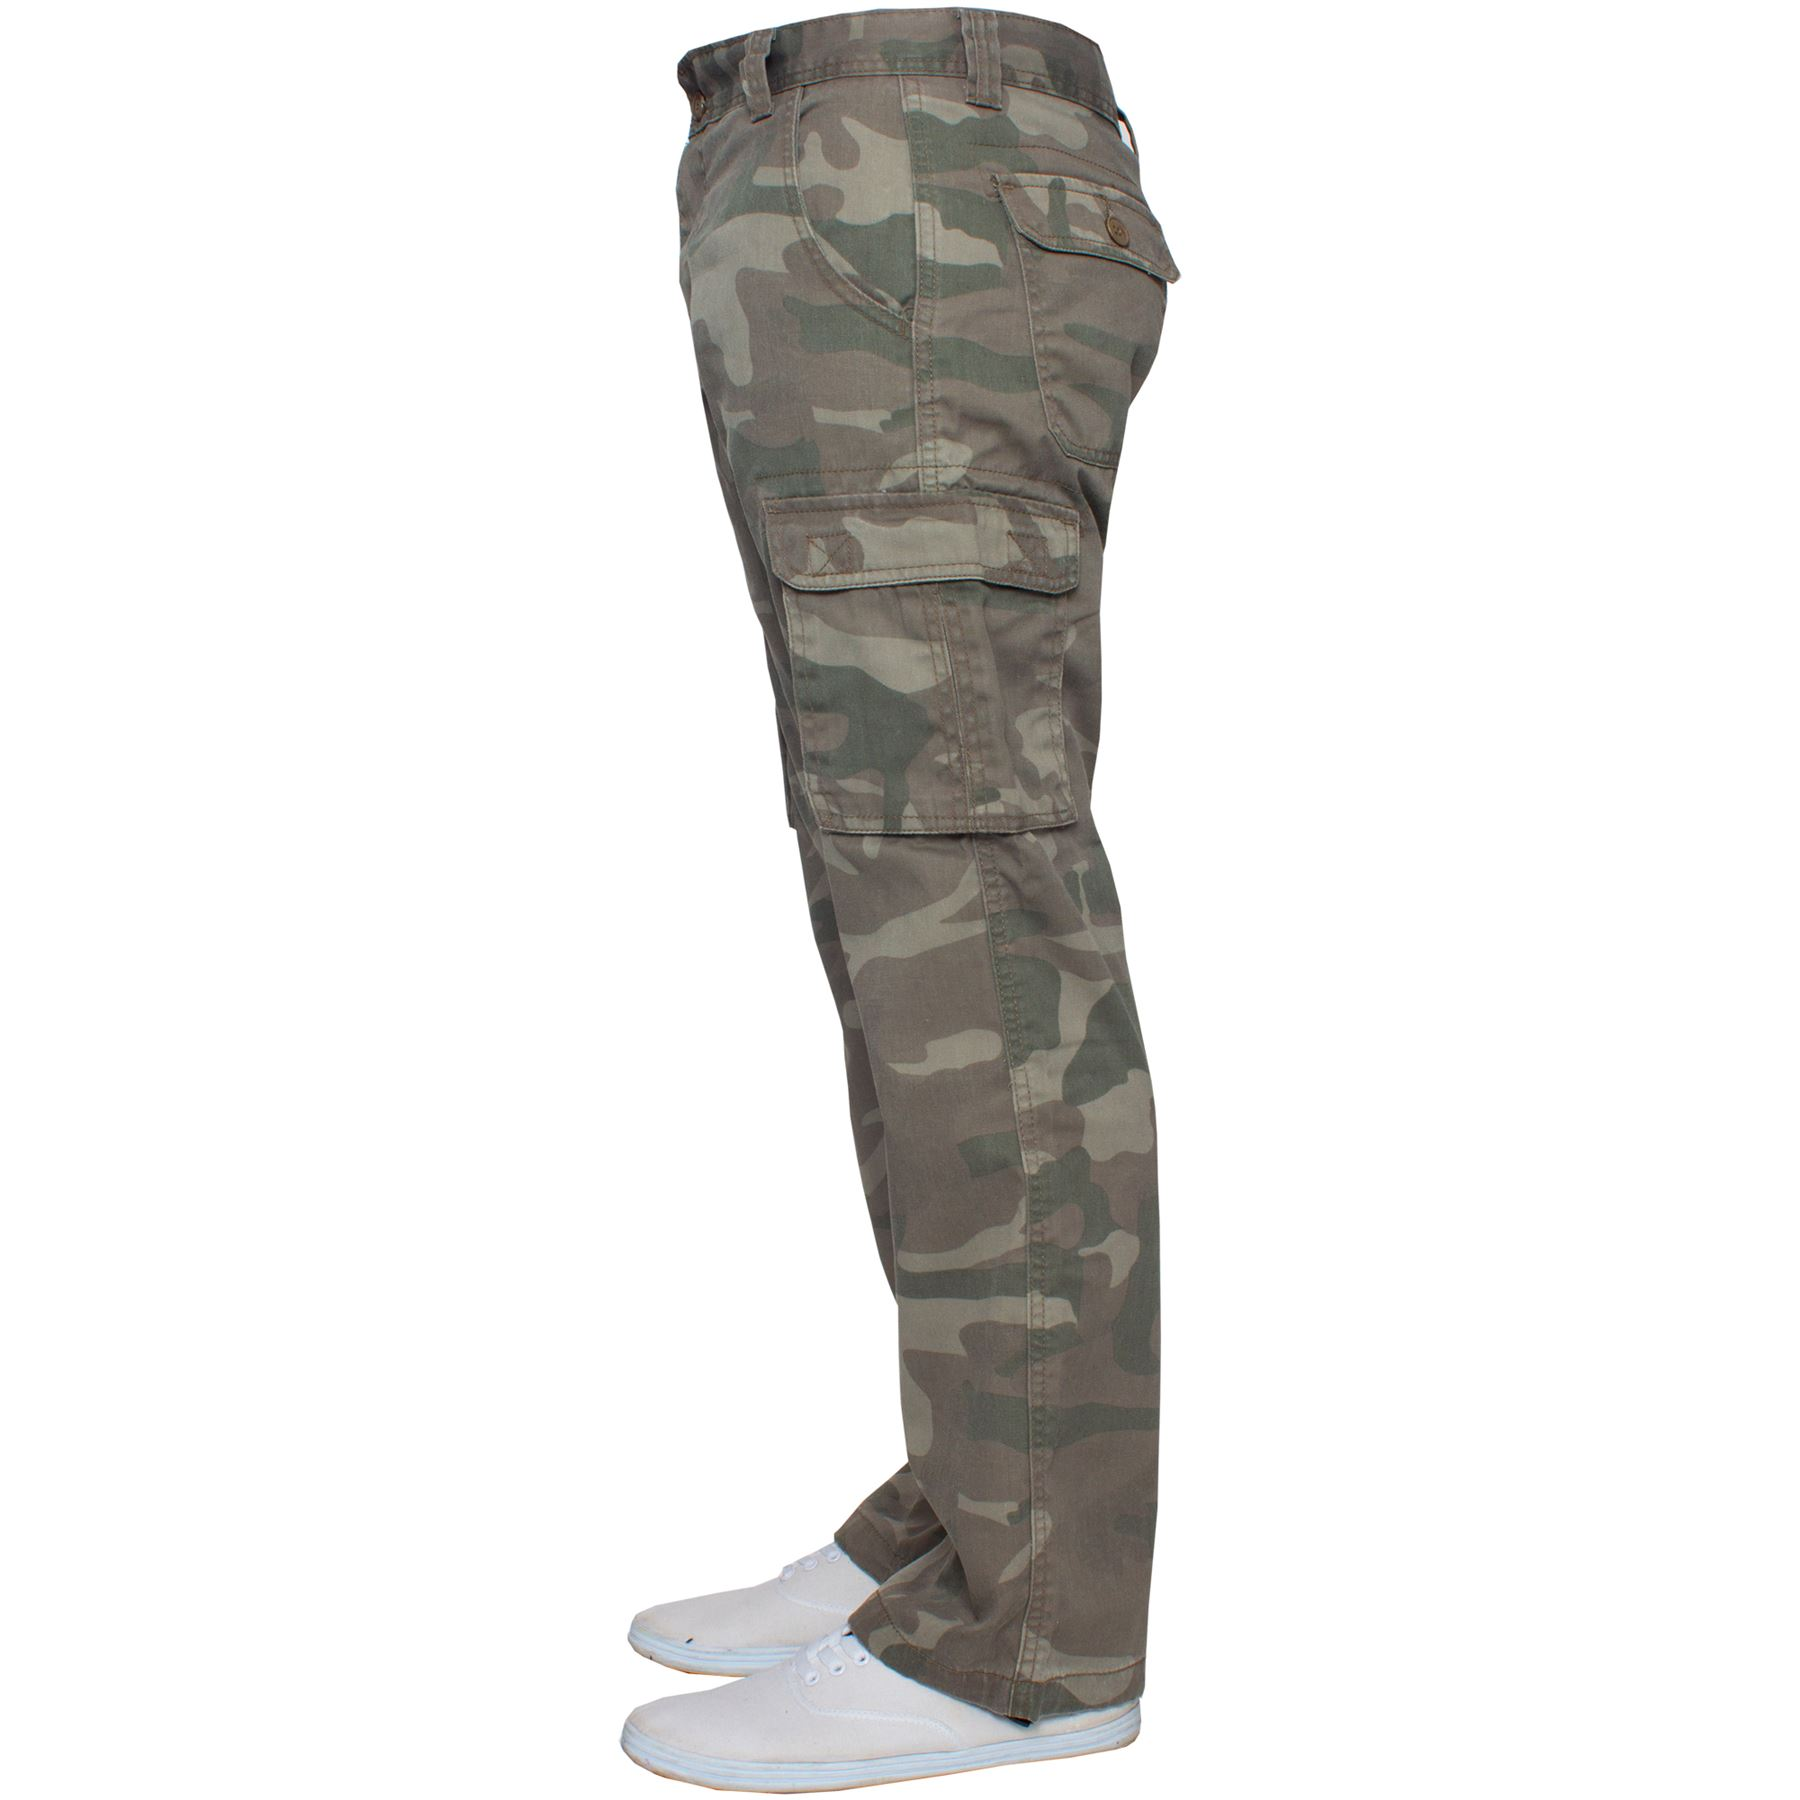 Kruze-Mens-Military-Combat-Trousers-Camouflage-Cargo-Camo-Army-Casual-Work-Pants thumbnail 27